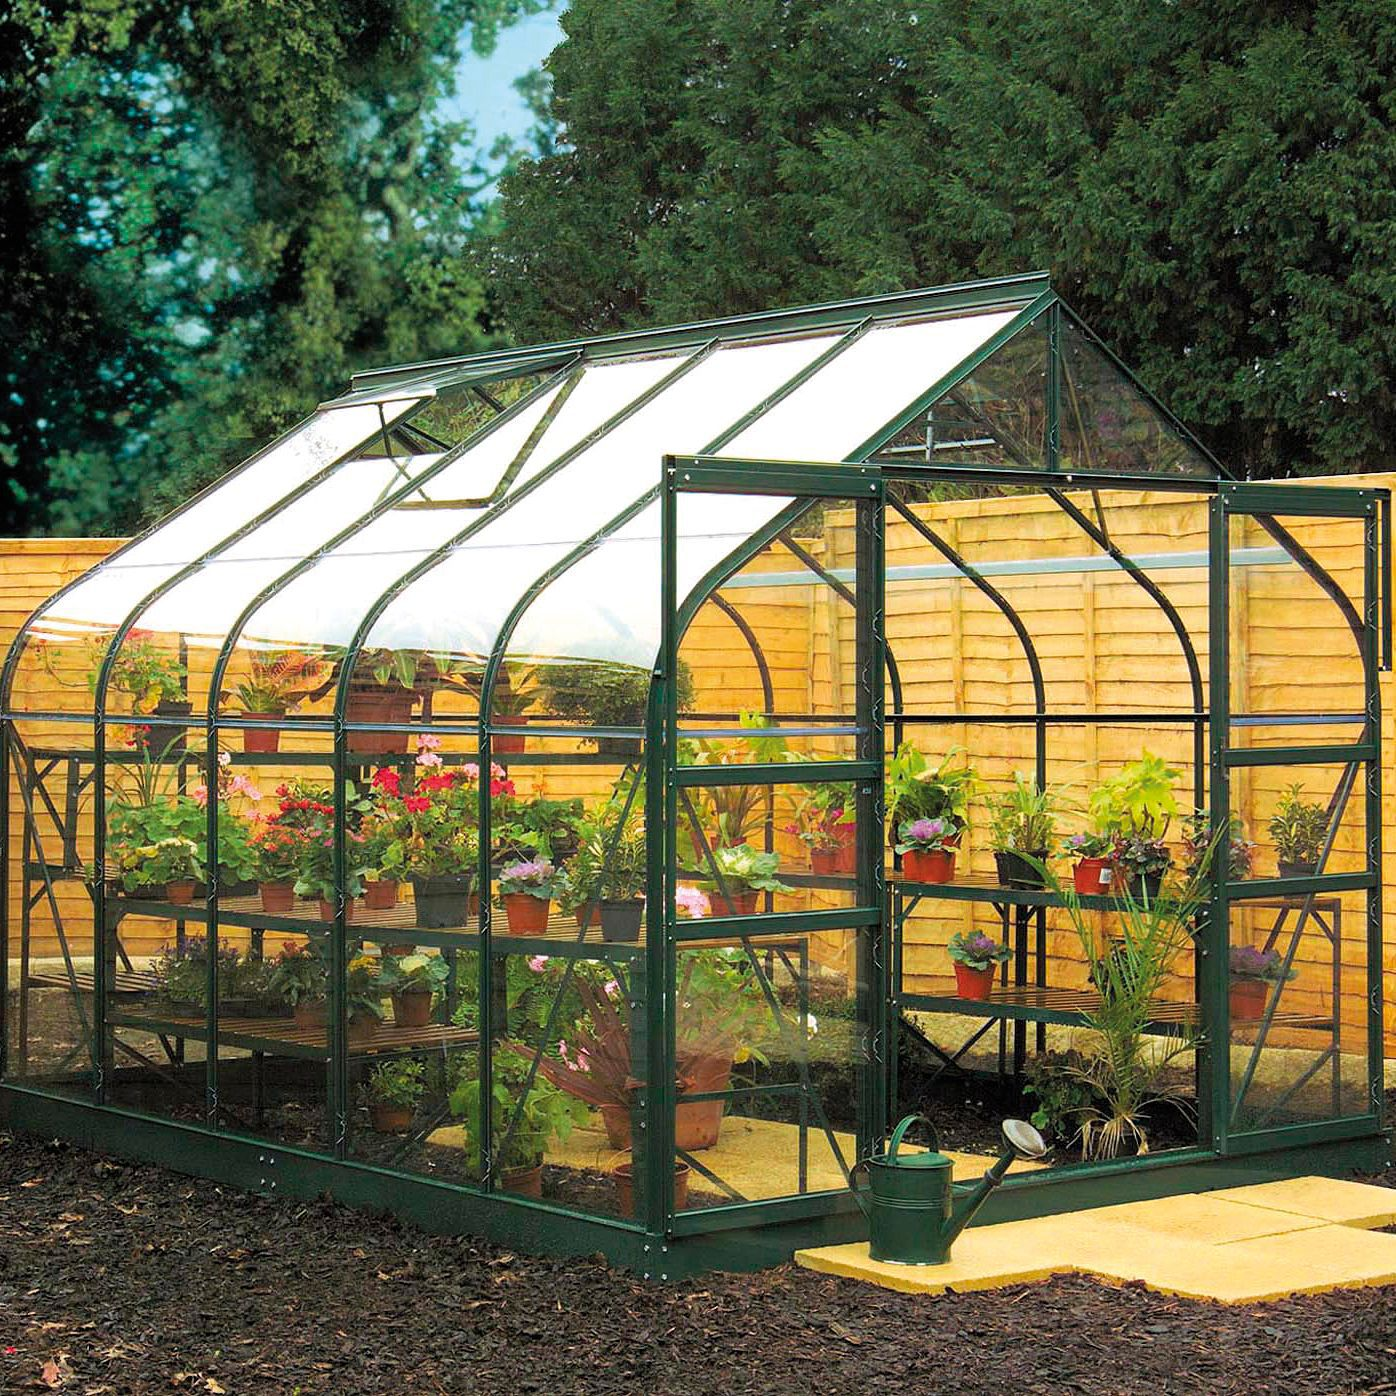 B&Q Metal 8x10 Toughened safety glass greenhouse